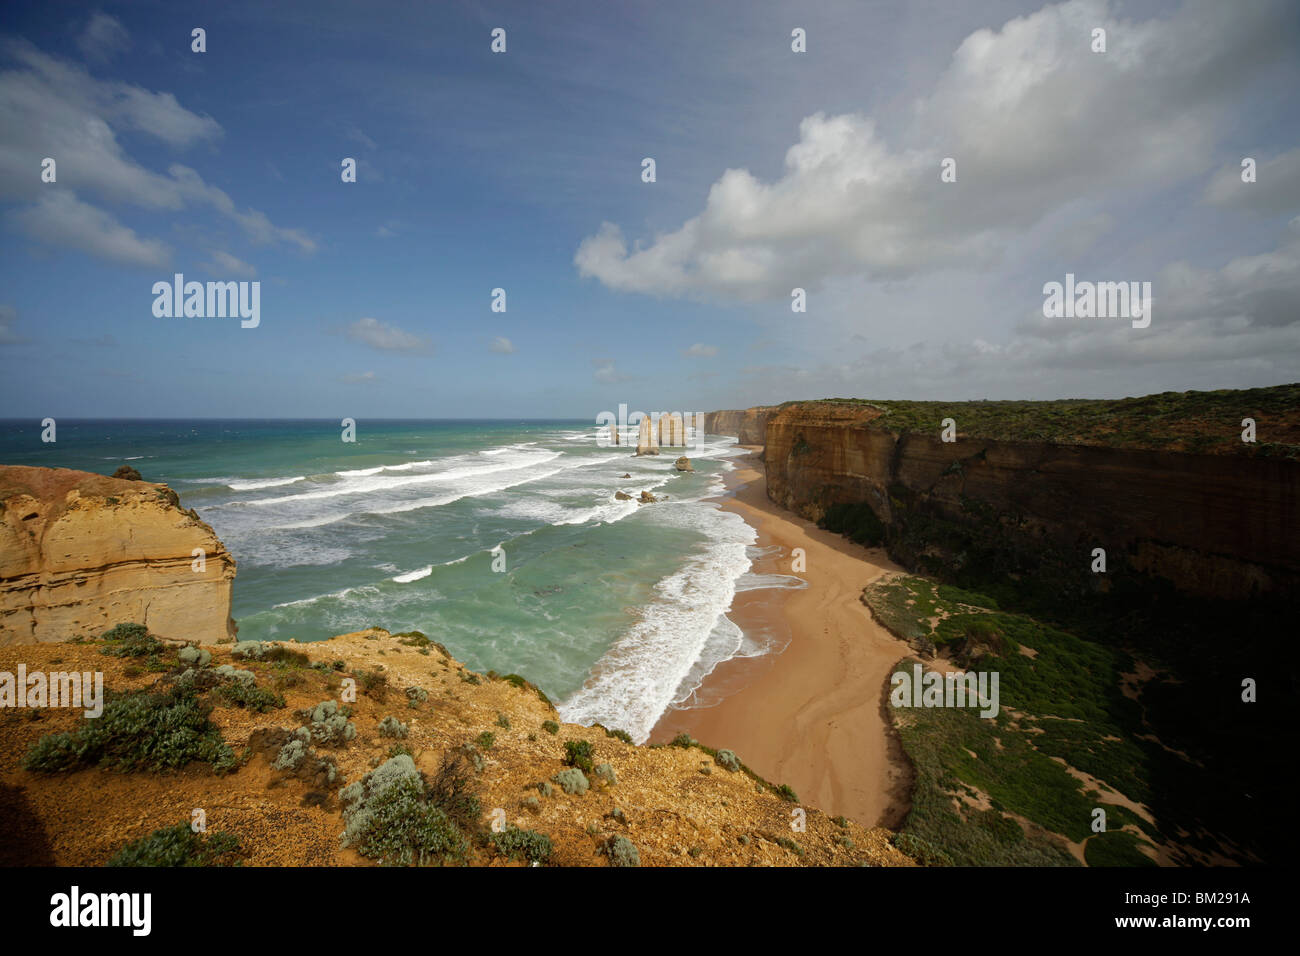 the famous coast with Twelve Apostles at the Port Campbell National Park, Great Ocean Road, Victoria, Australia - Stock Image